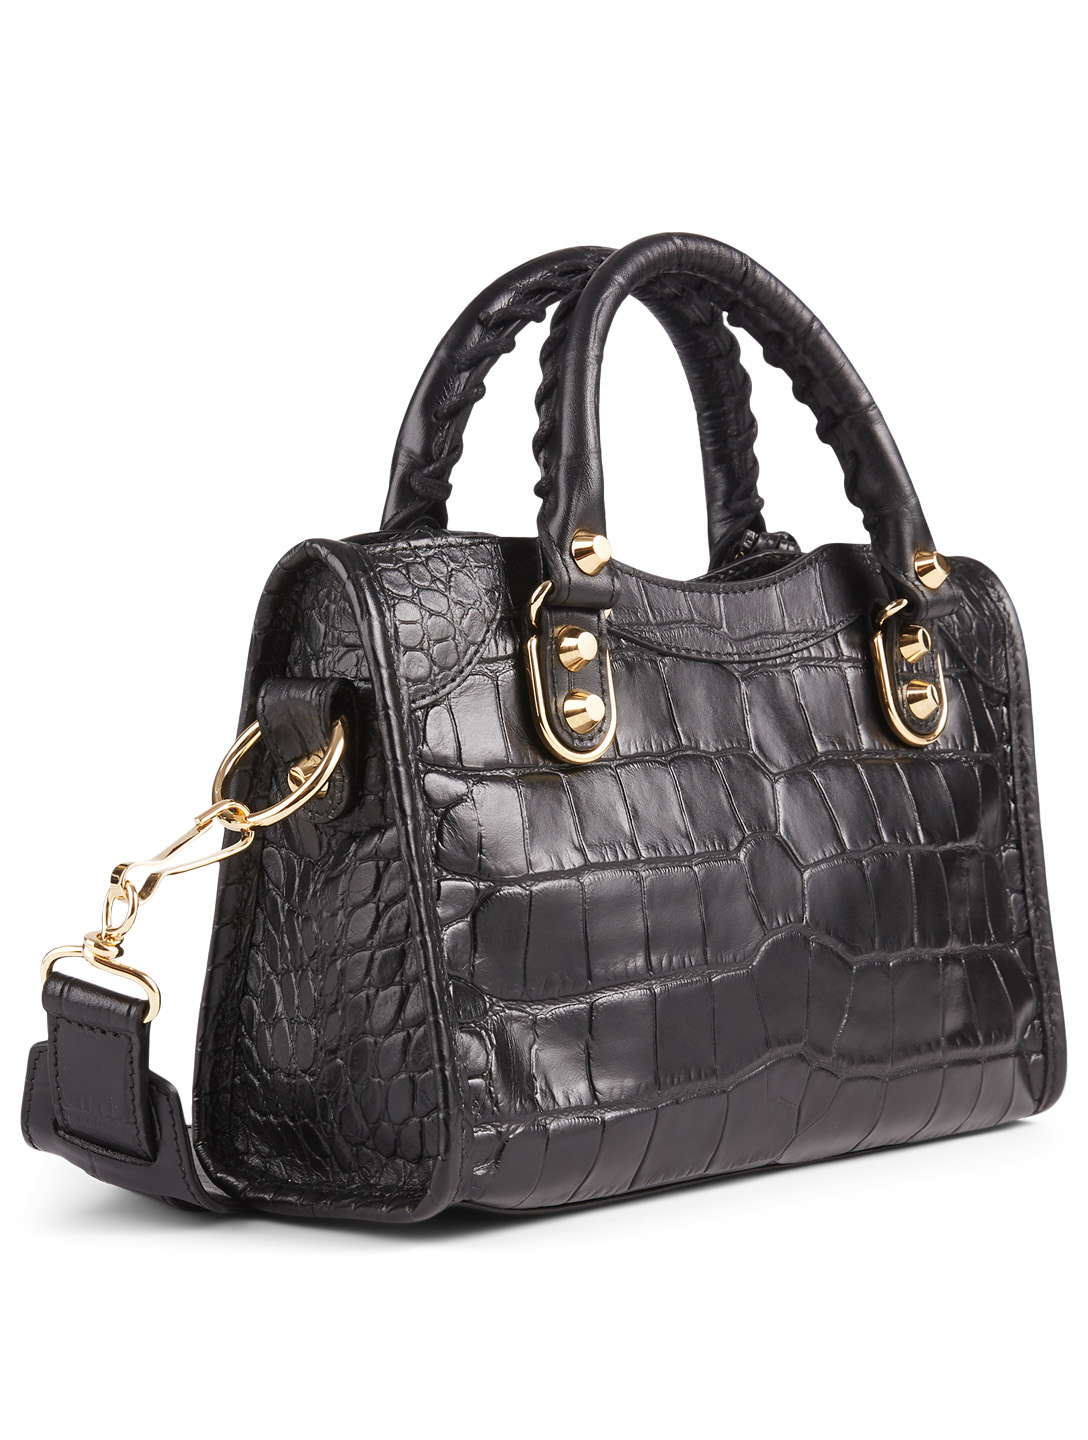 BALENCIAGA Mini Classic City Metallic Edge Croc-Embossed Leather Bag Women's Black